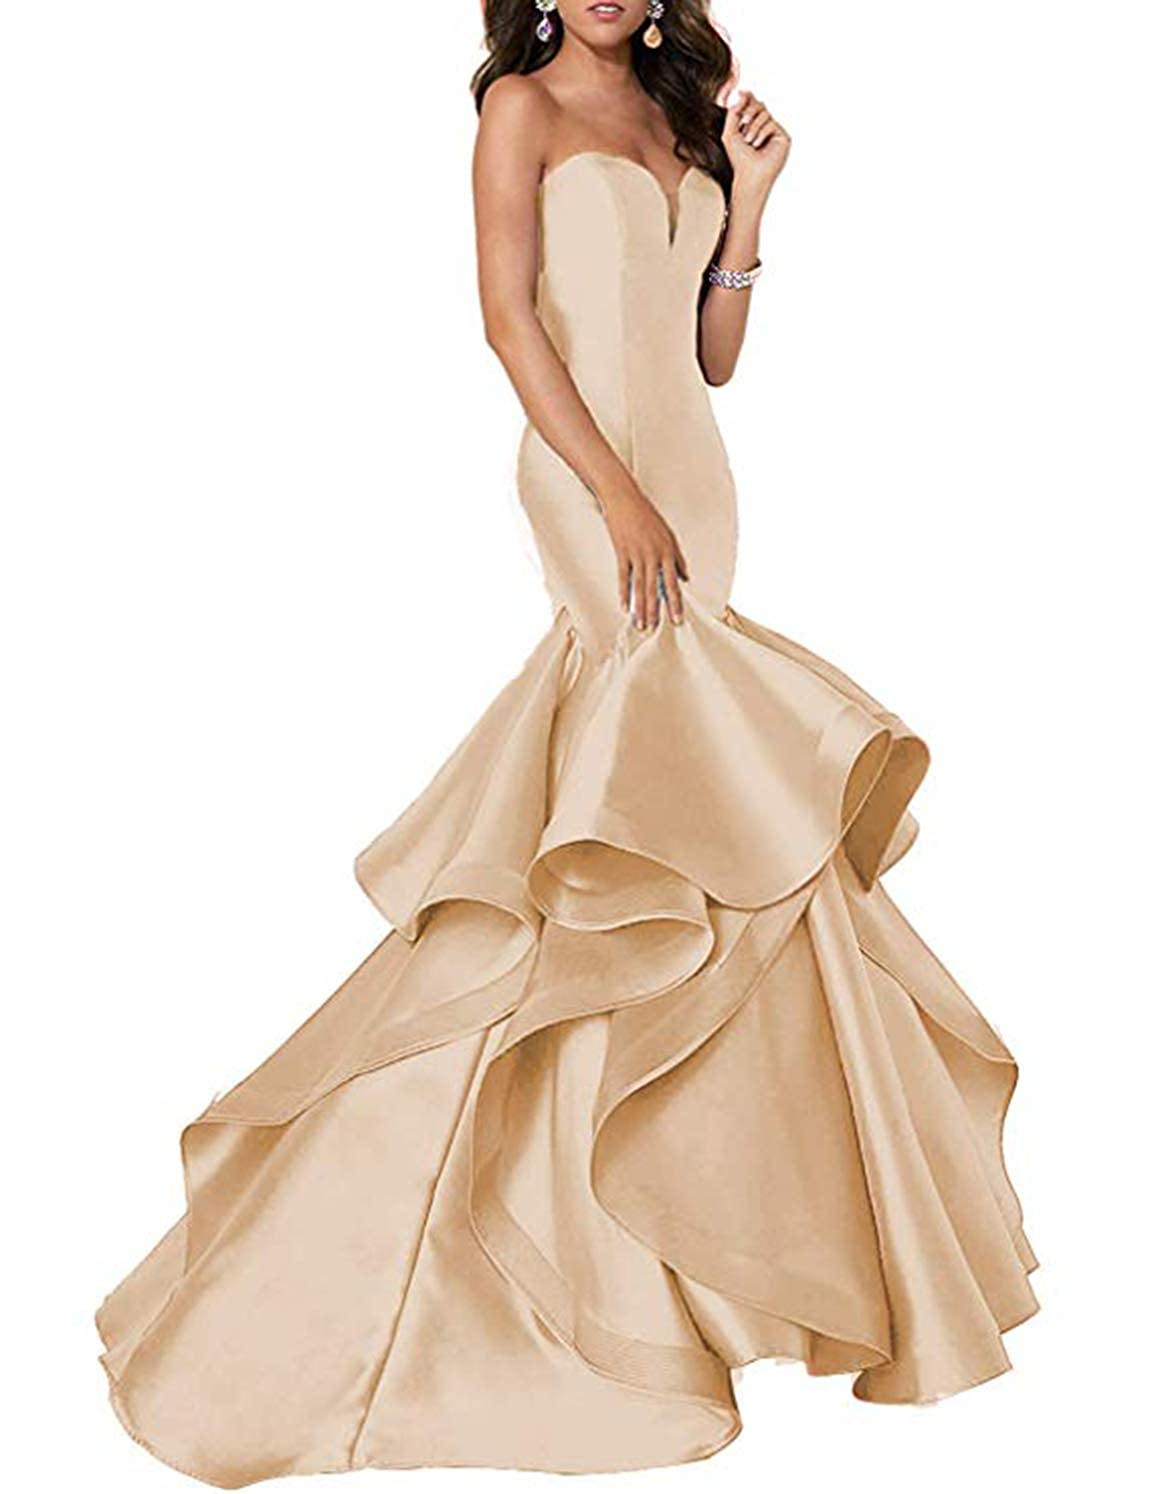 Champagne Scarisee Women's Sweetheart Mermaid Prom Evening Party Dresses Tiered FormalSA51